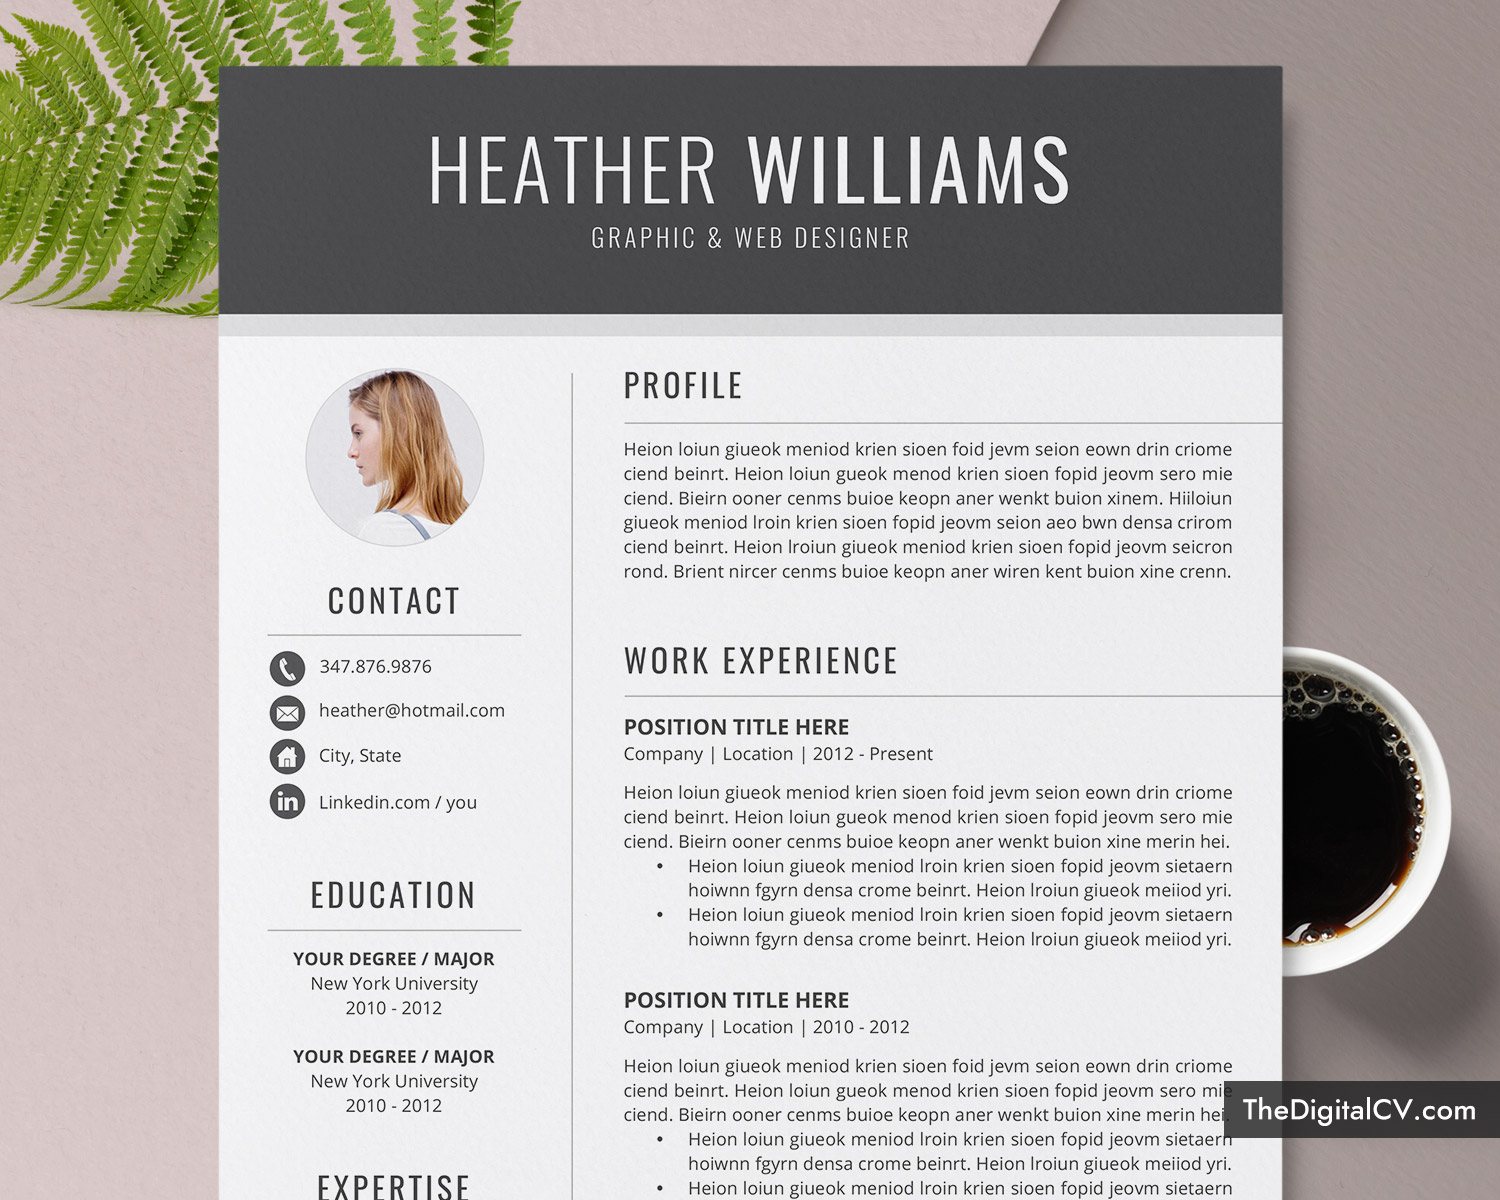 Resume Template For Job Application 2020 2021 Cv Template Cover Letter 1 3 Page Word Resume Modern And Creative Resume Professional Resume Job